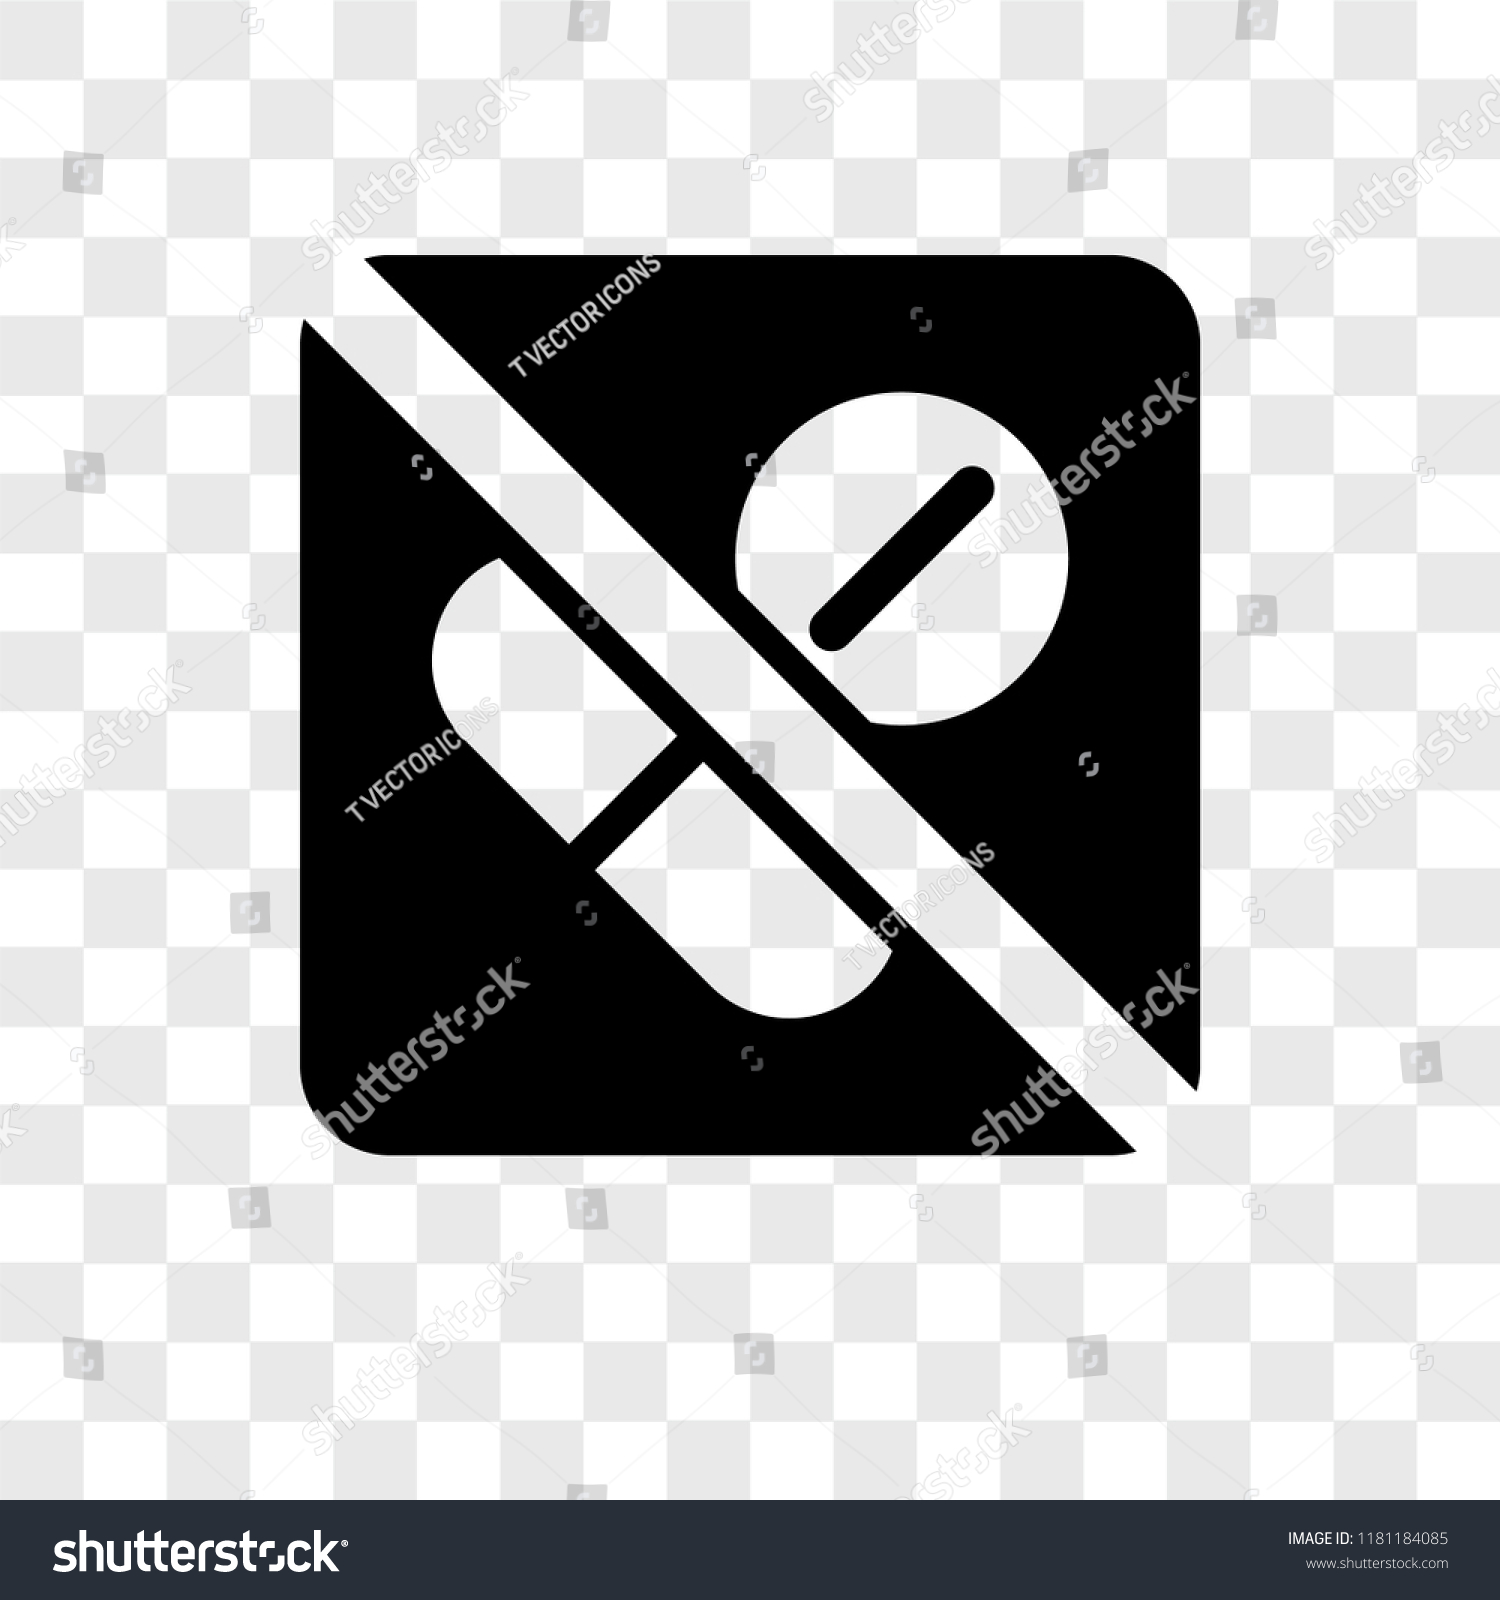 no drugs vector icon isolated on stock vector royalty free 1181184085 shutterstock